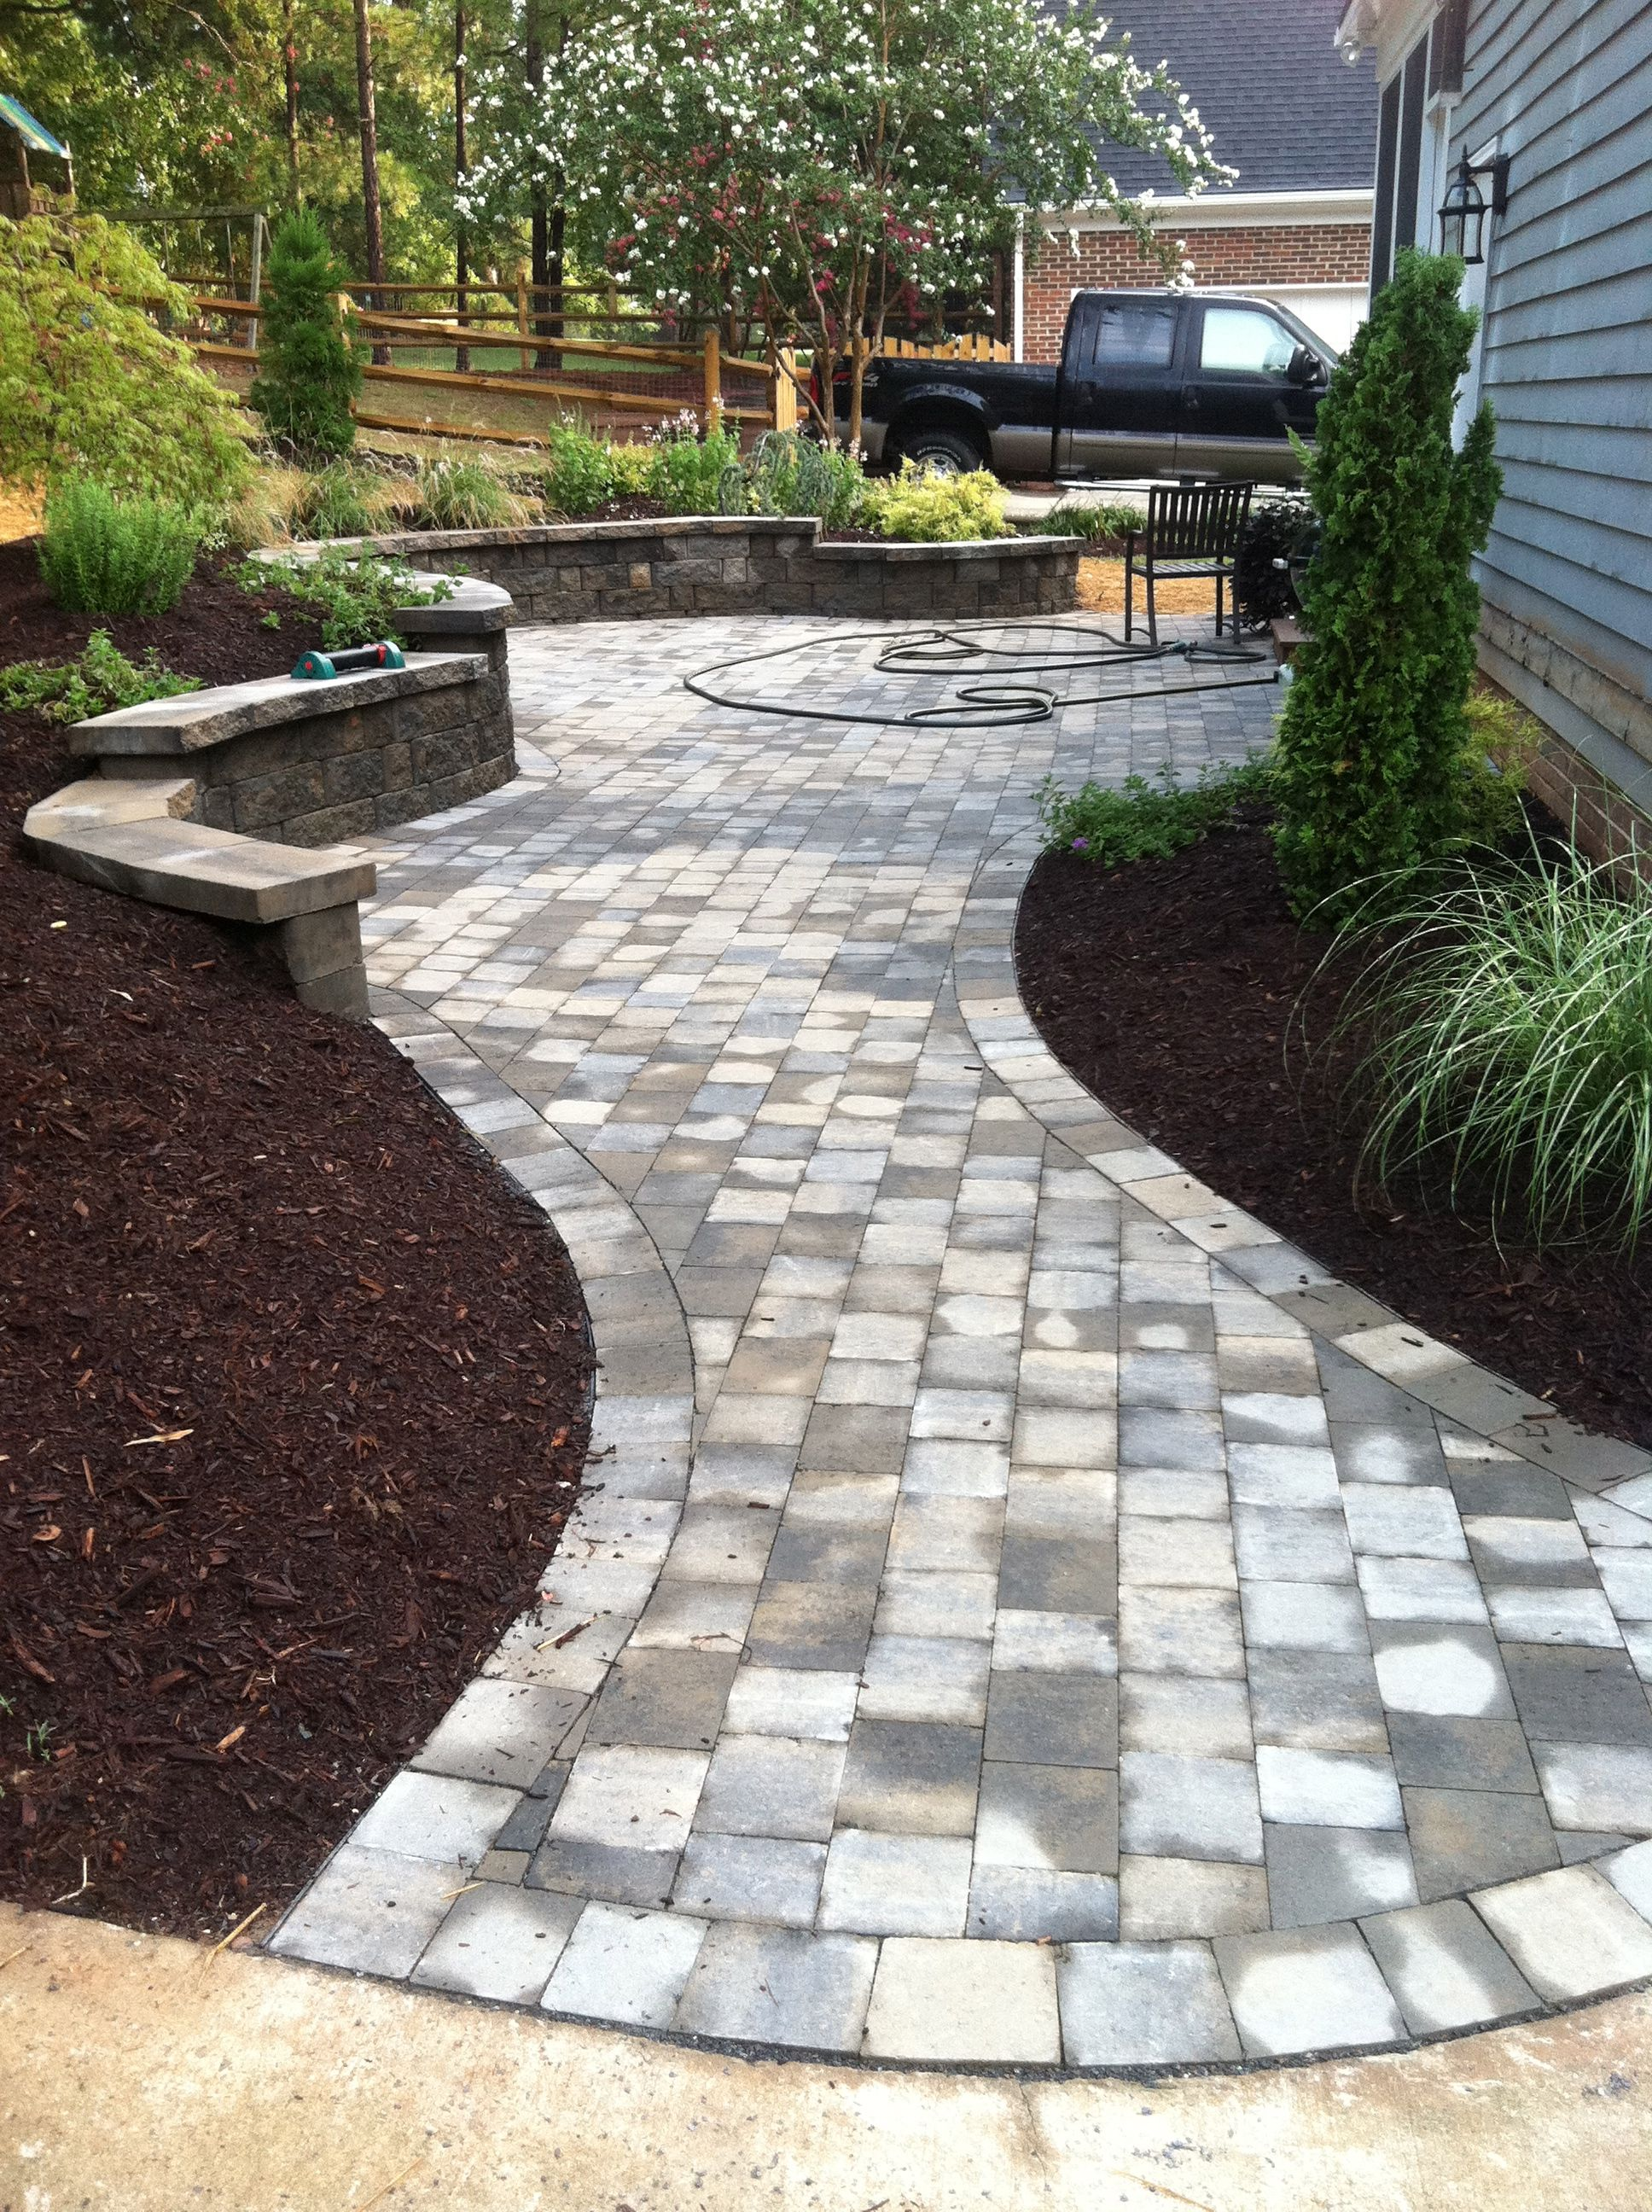 Paver Patio/Walkway | Pavers backyard, Patio pavers design ... on Small Brick Patio Ideas id=81375